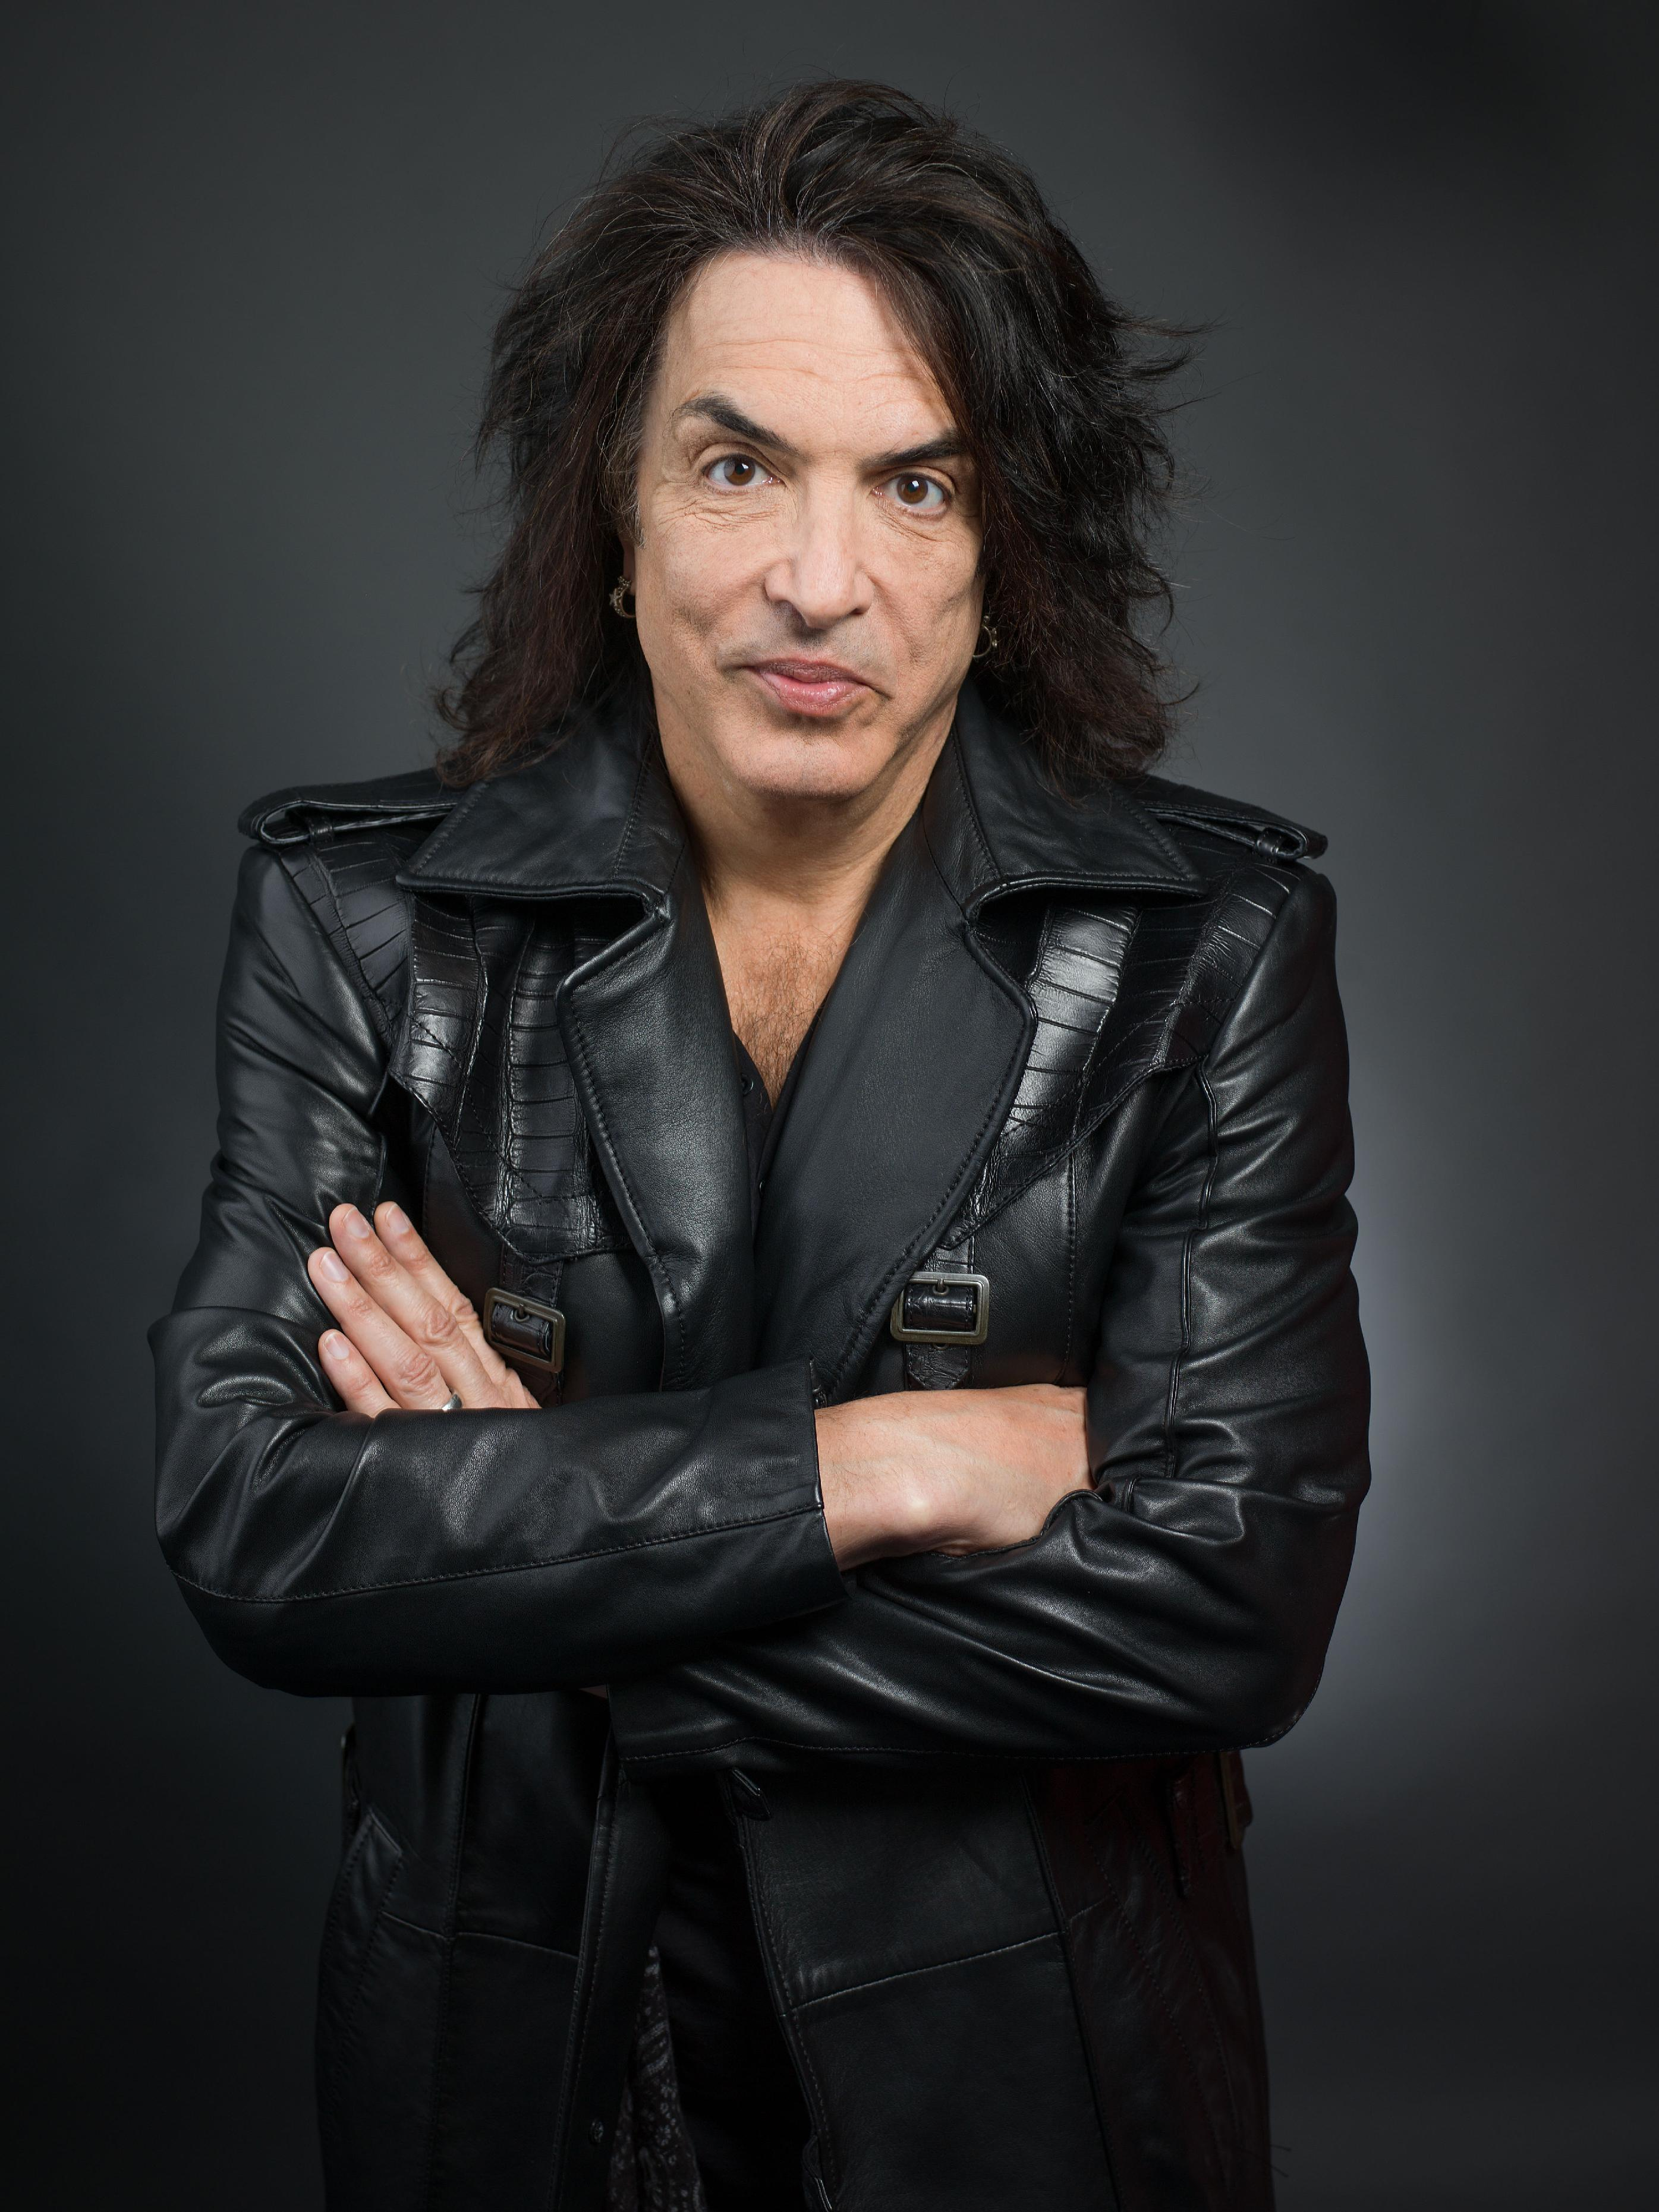 paul stanley live to win flac